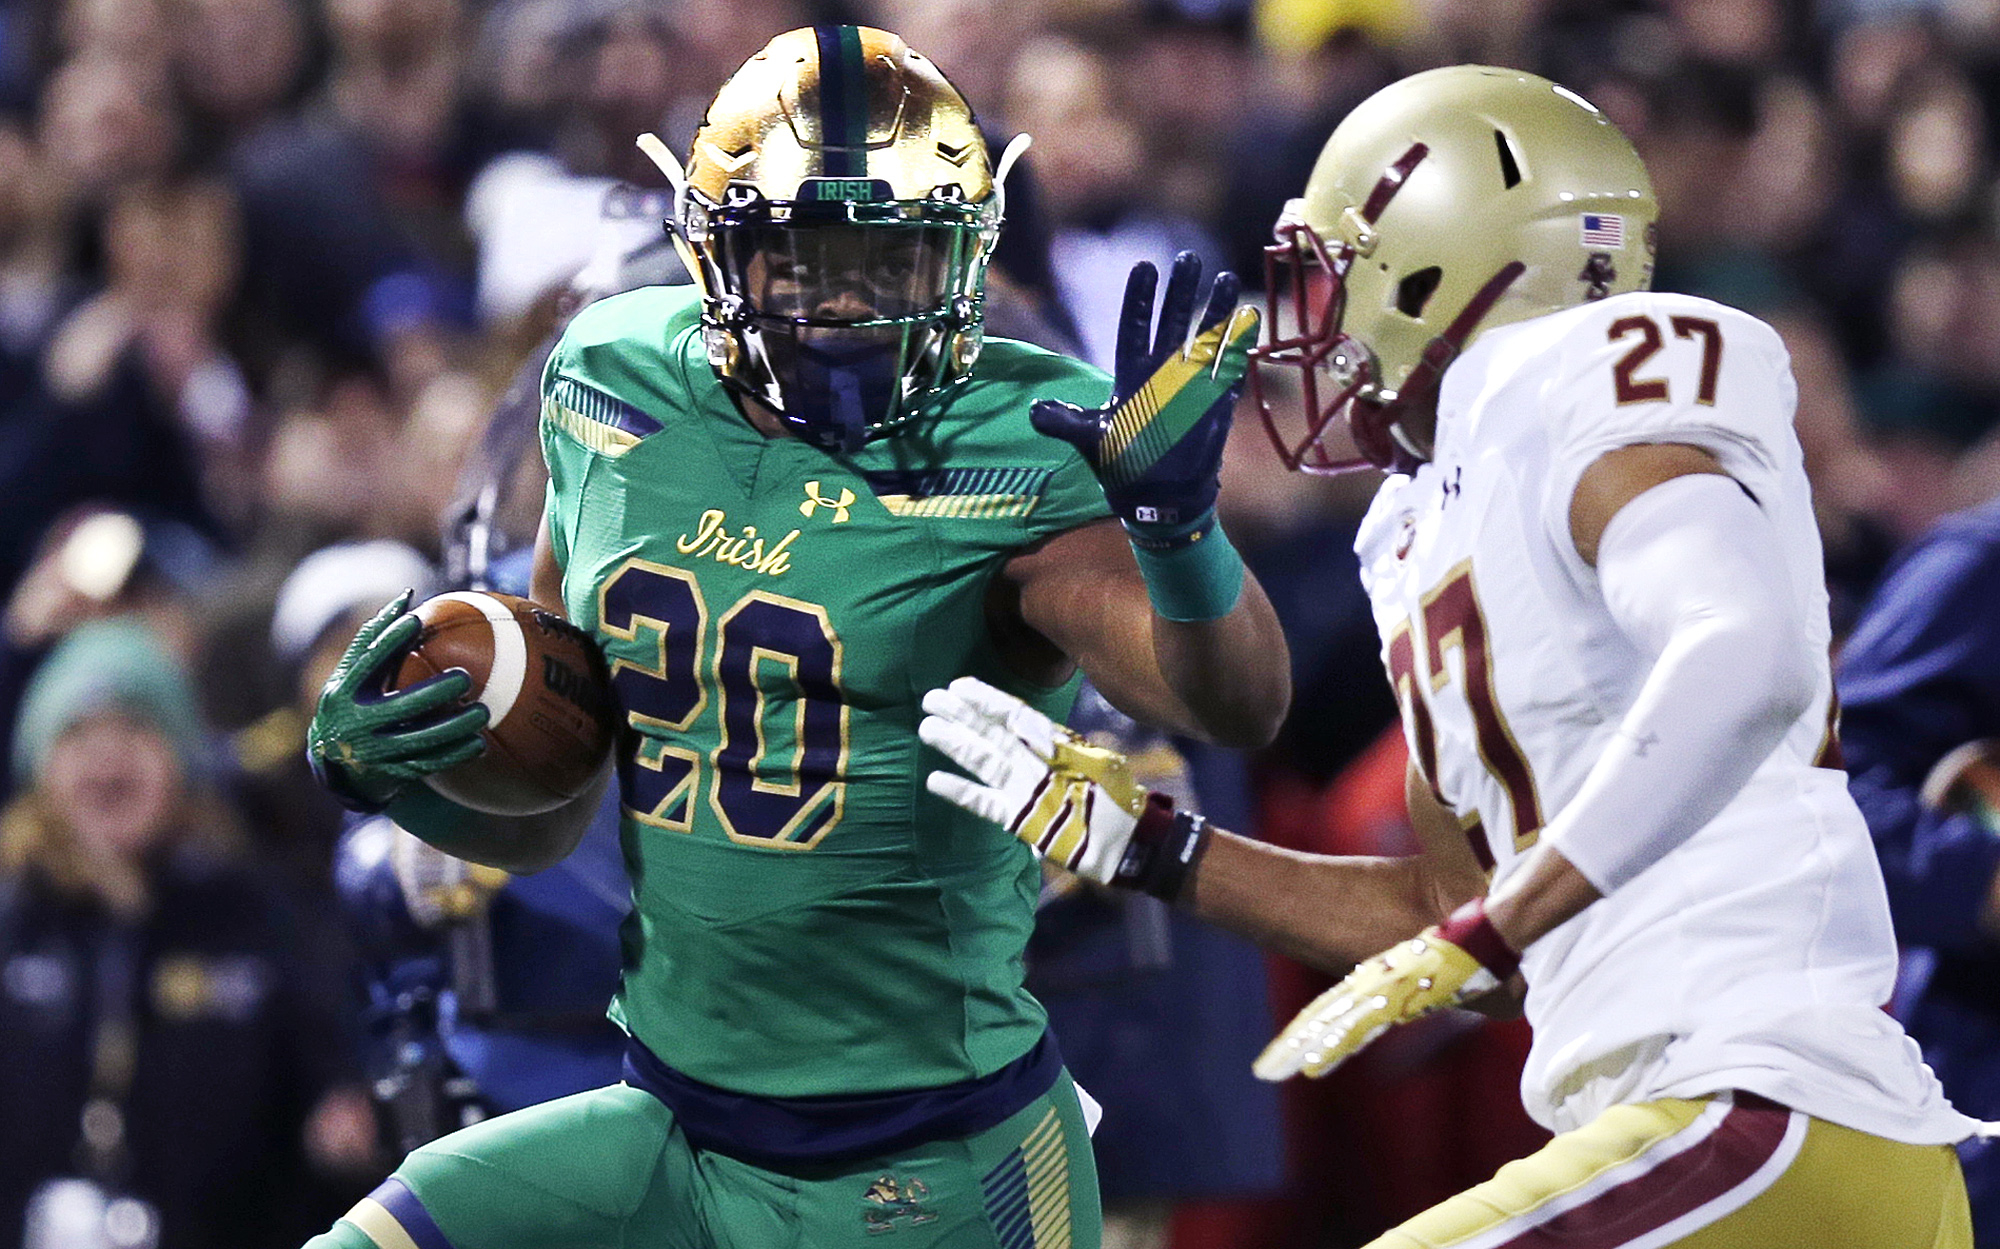 Notre Dame running back C.J. Prosise (20) tries to elude Boston College defensive back Justin Simmons (27) on a drive during the first half of the Shamrock Series NCAA college football game at Fenway Park, home of the Boston Red Sox, in Boston, Saturday,